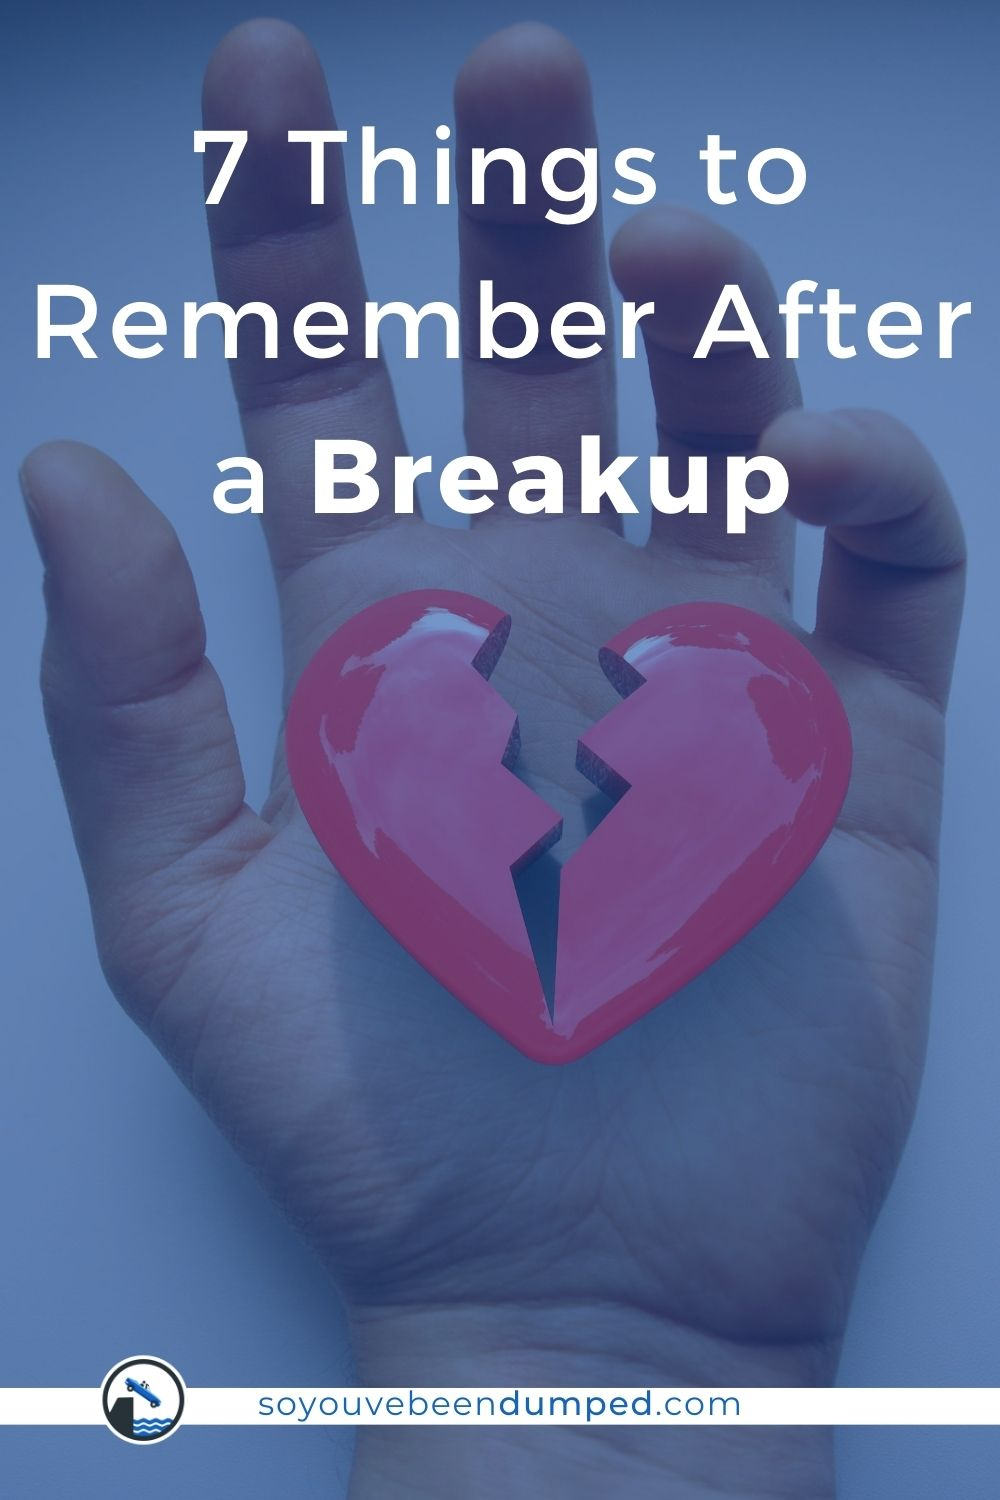 7 Things to Remember After a Breakup